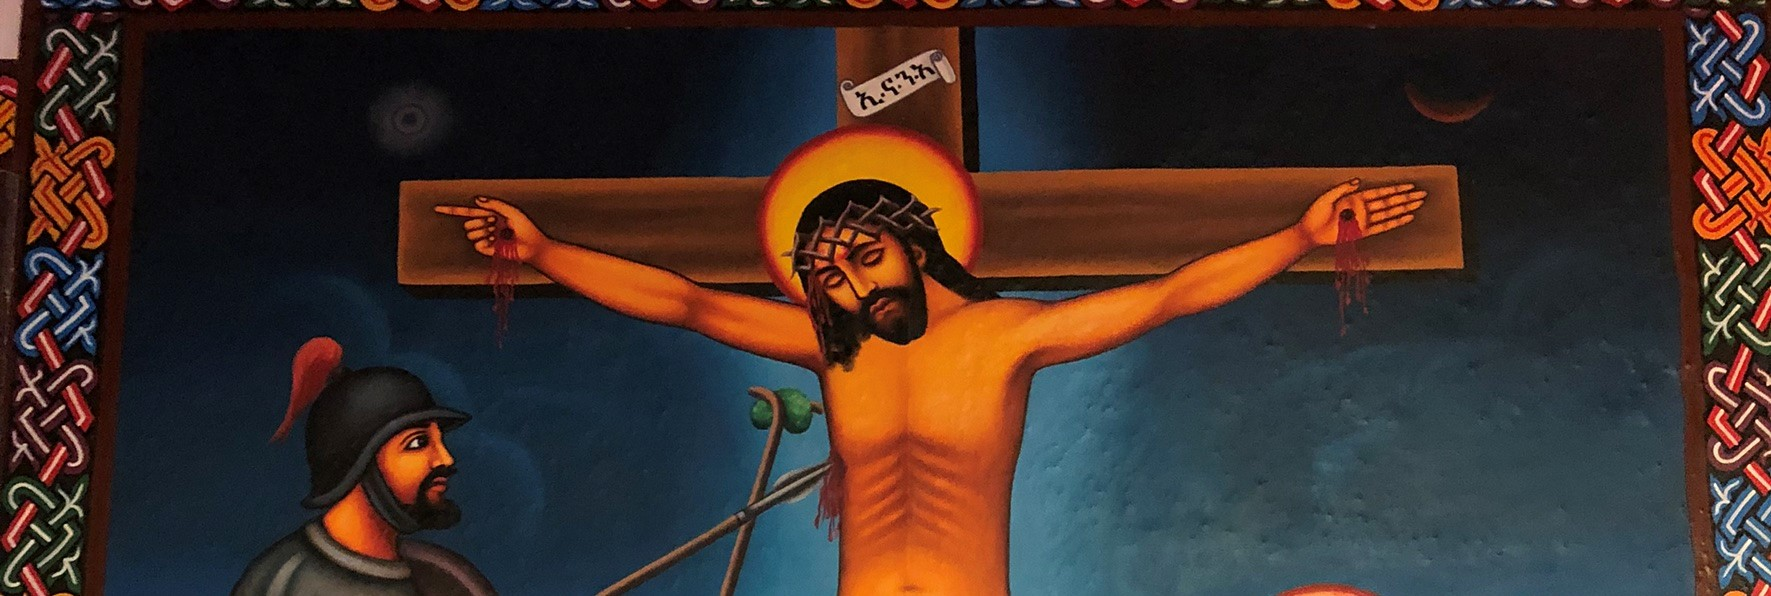 Crucifixion Website